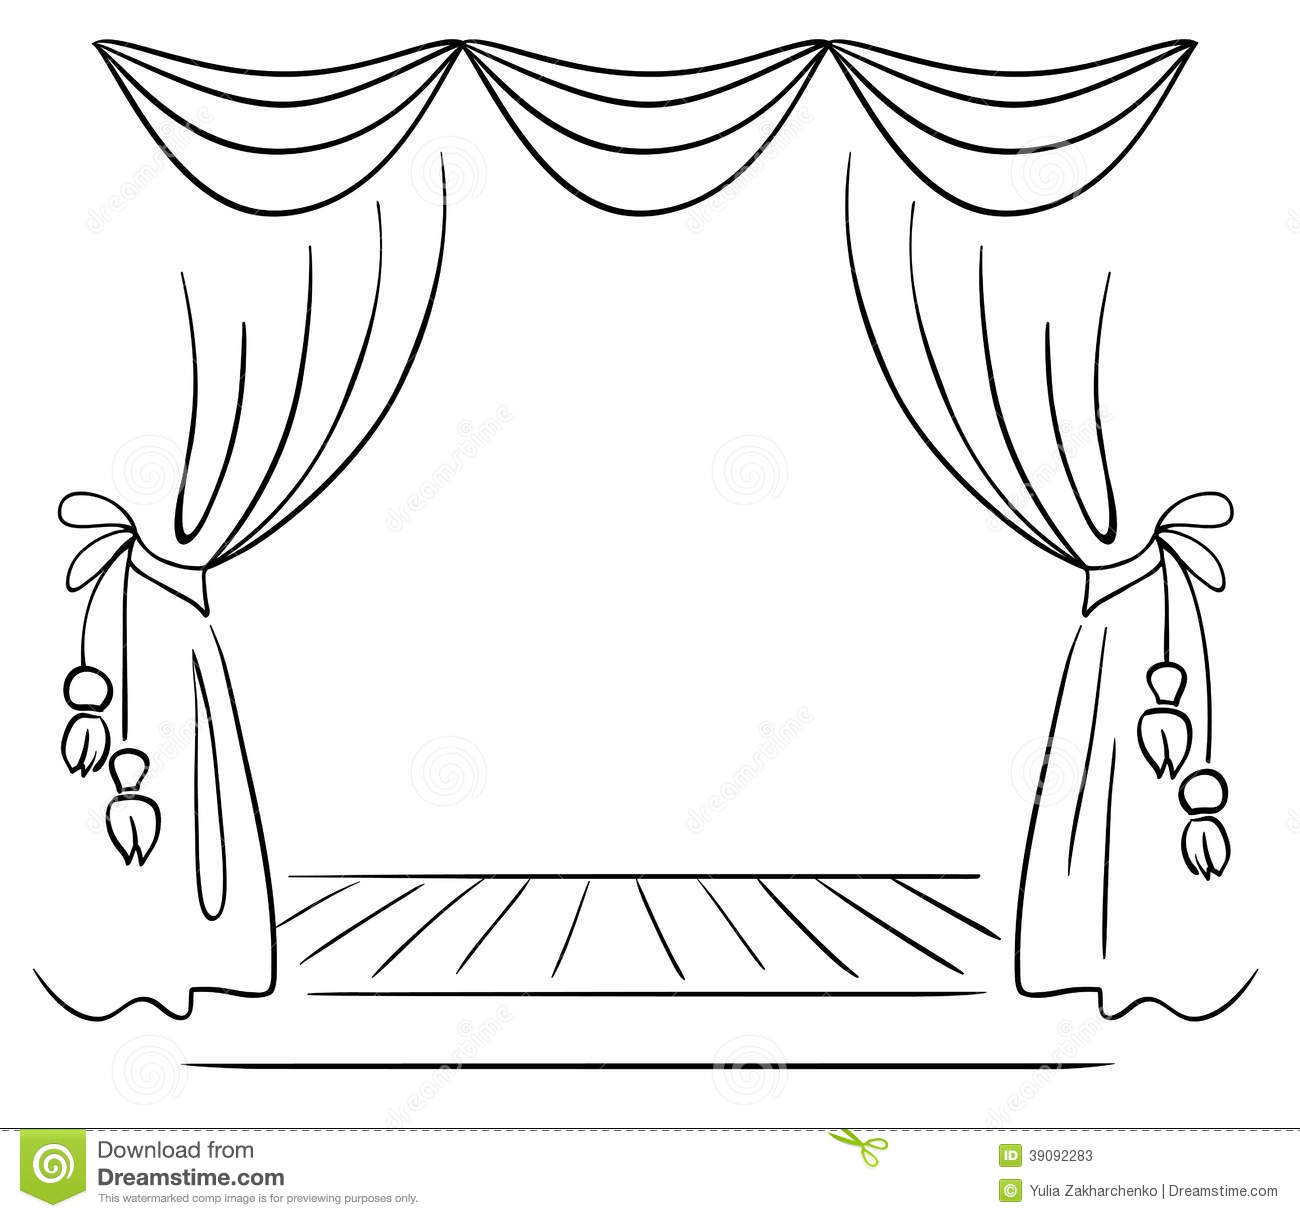 Free coloring pages of stage curtains - Royalty Free Stock Photo